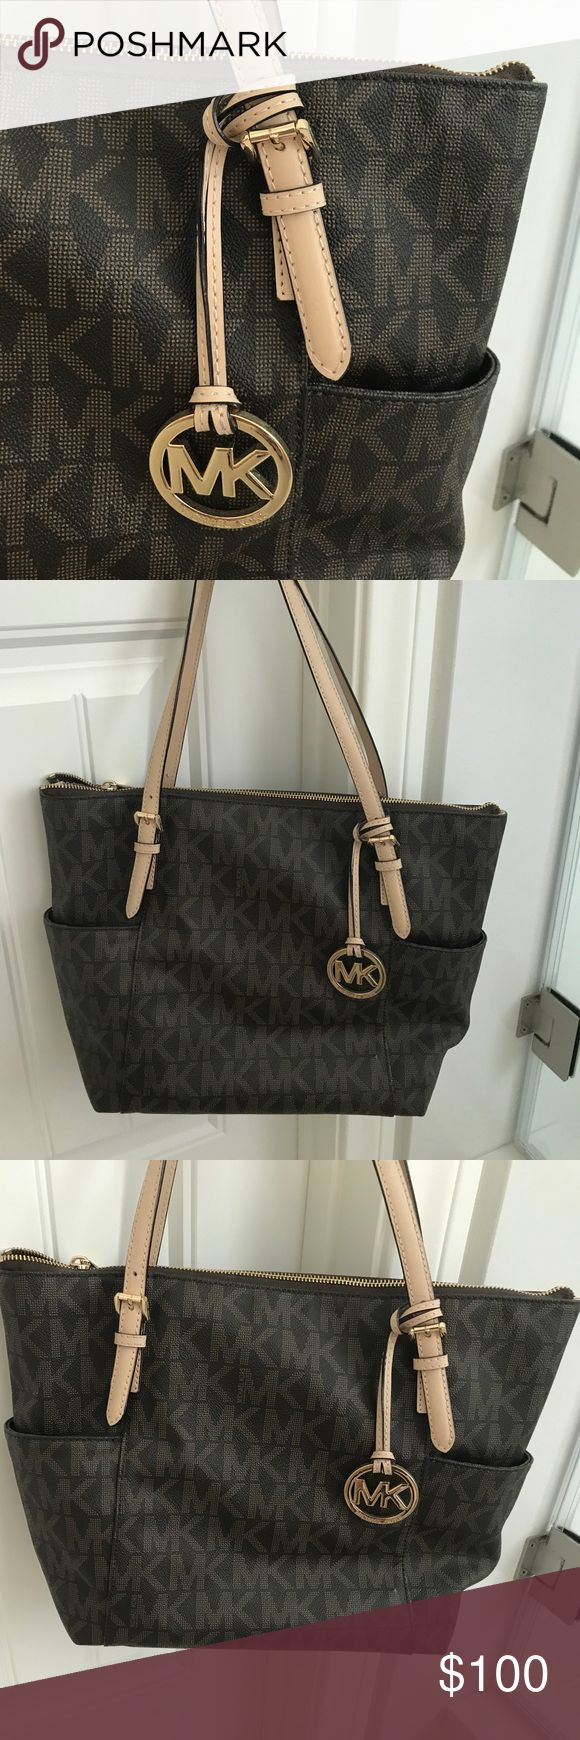 """Michael Kors Jet Set Monogram Tote, Leather Michael Kors Jet Set Monogram Leather Tote/Handbag. Brown leather with MK logos, tan handles, gold zippers. Interior is brown MK lining, large zipper pocket and two large phone pockets. Fit iPhone Plus no problem. Also two side pockets.   Lightly used. I'm very protective of my nice purses— no scratches, no marks, no wear, no tear- completely clean. Looks brand new. Leather still """"stiff"""" meaning lightly used but still new. KORS Michael Kors Bags…"""